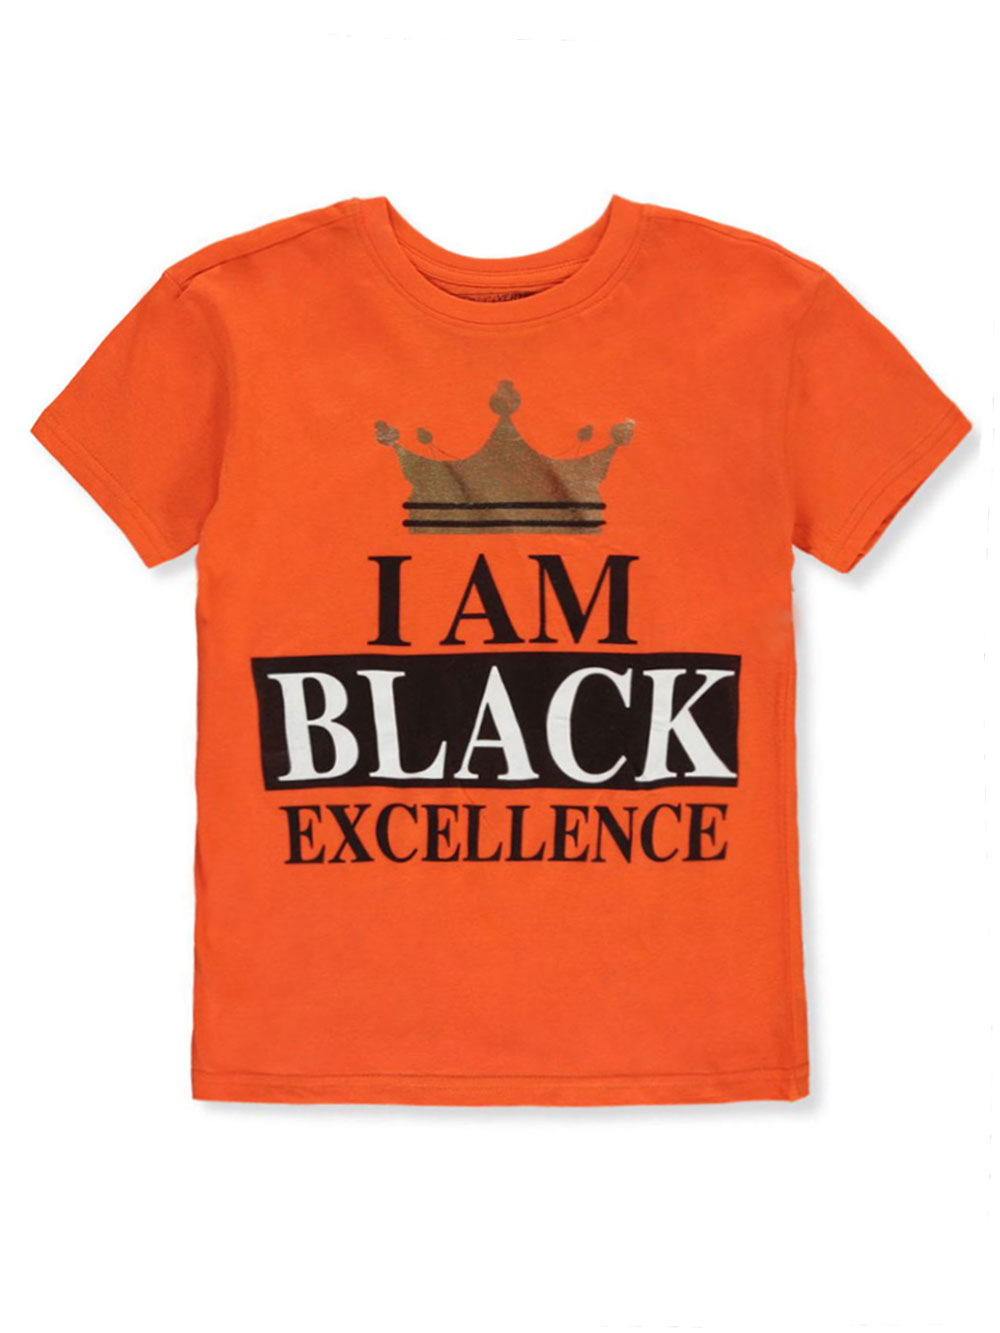 Boys' Black Excellence T-Shirt